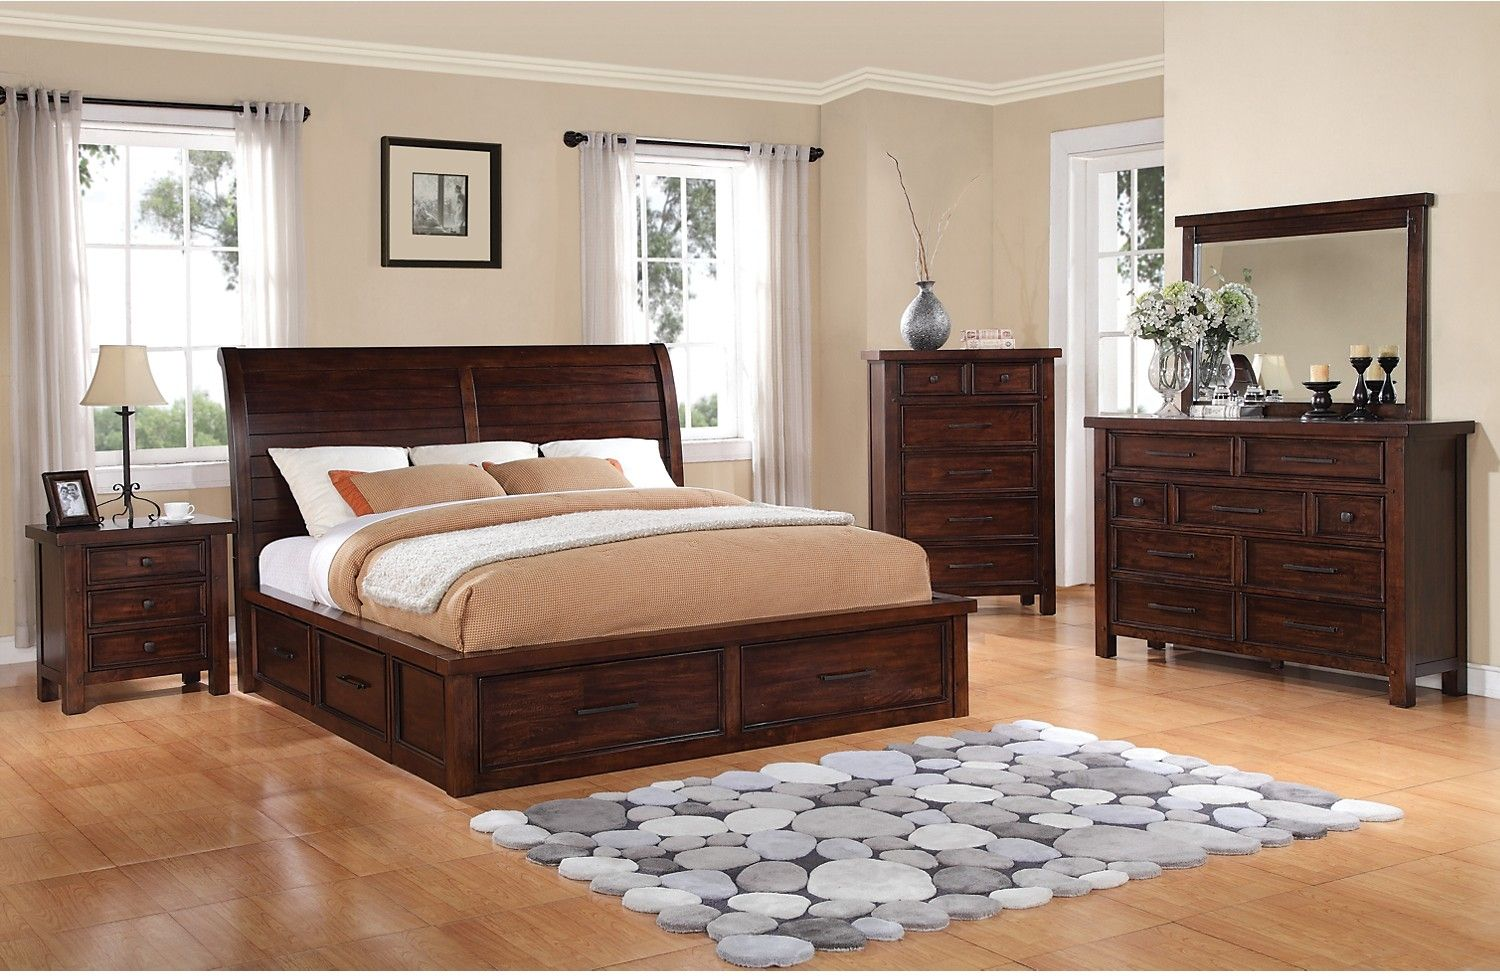 Sonoma 8-Piece King Storage Bedroom Set - Dark Brown | Home ...